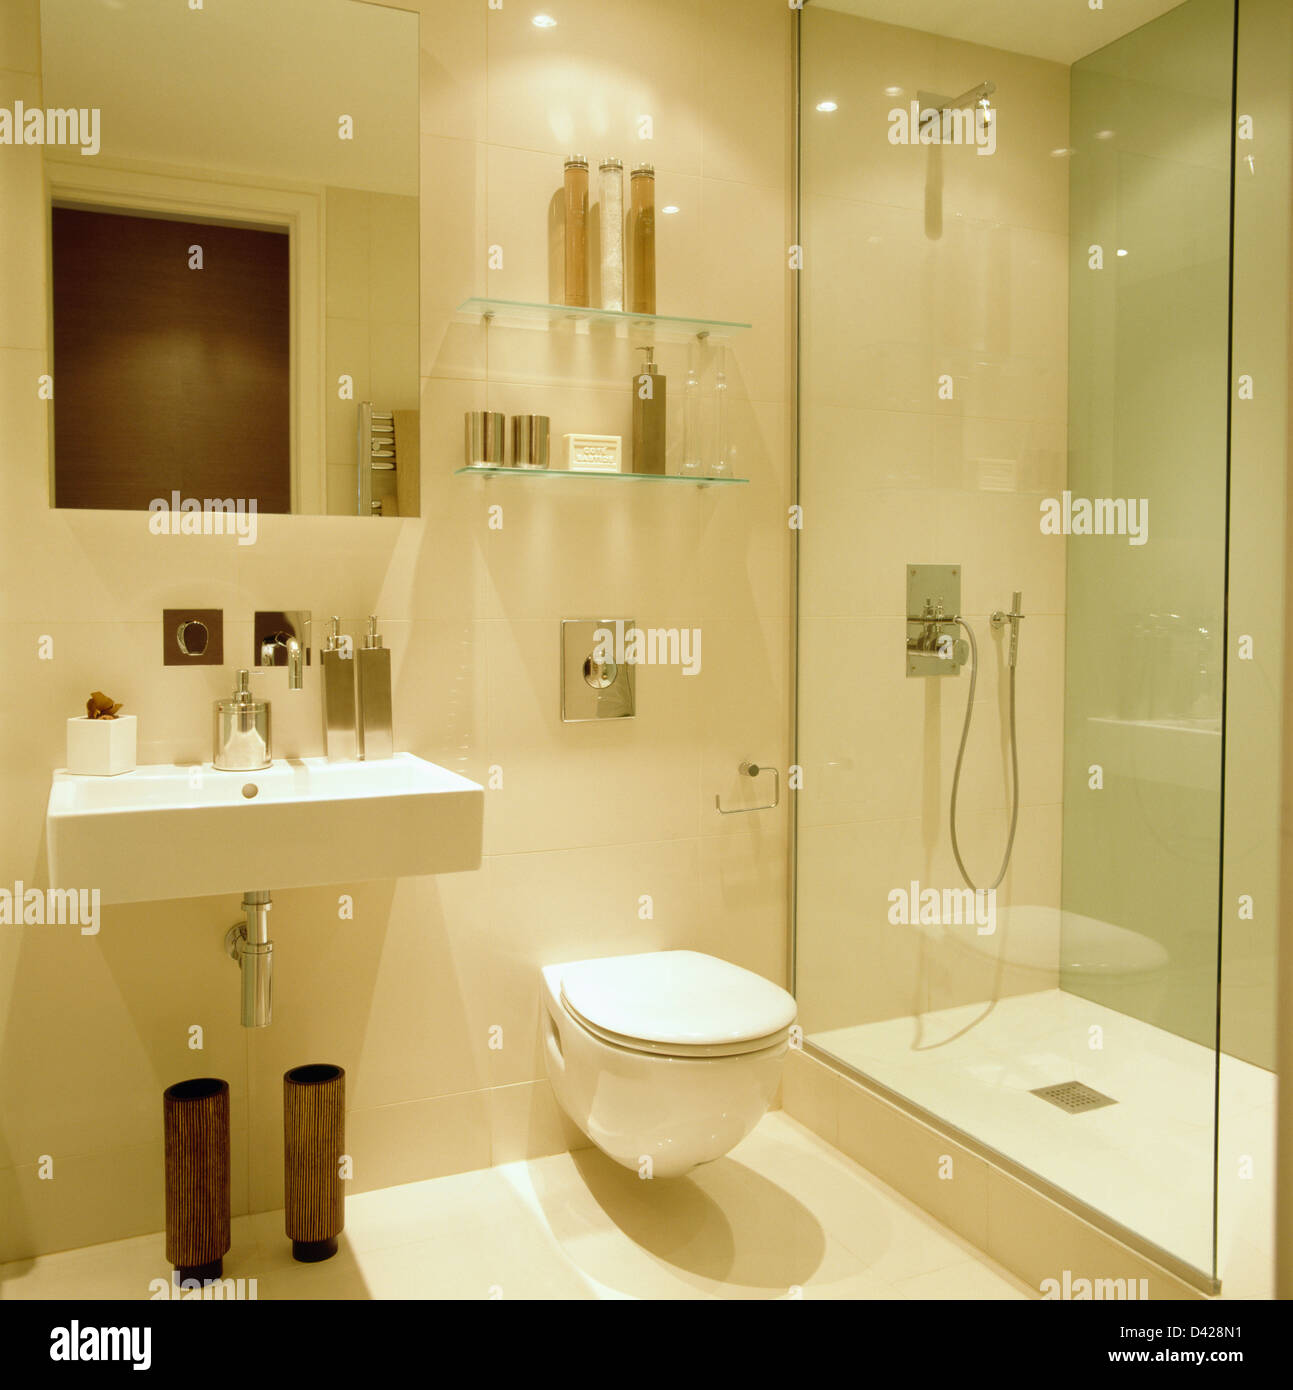 Glass Shelves Bathroom Wall Mounted Basin And Glass Shower Cabinet In Modern White